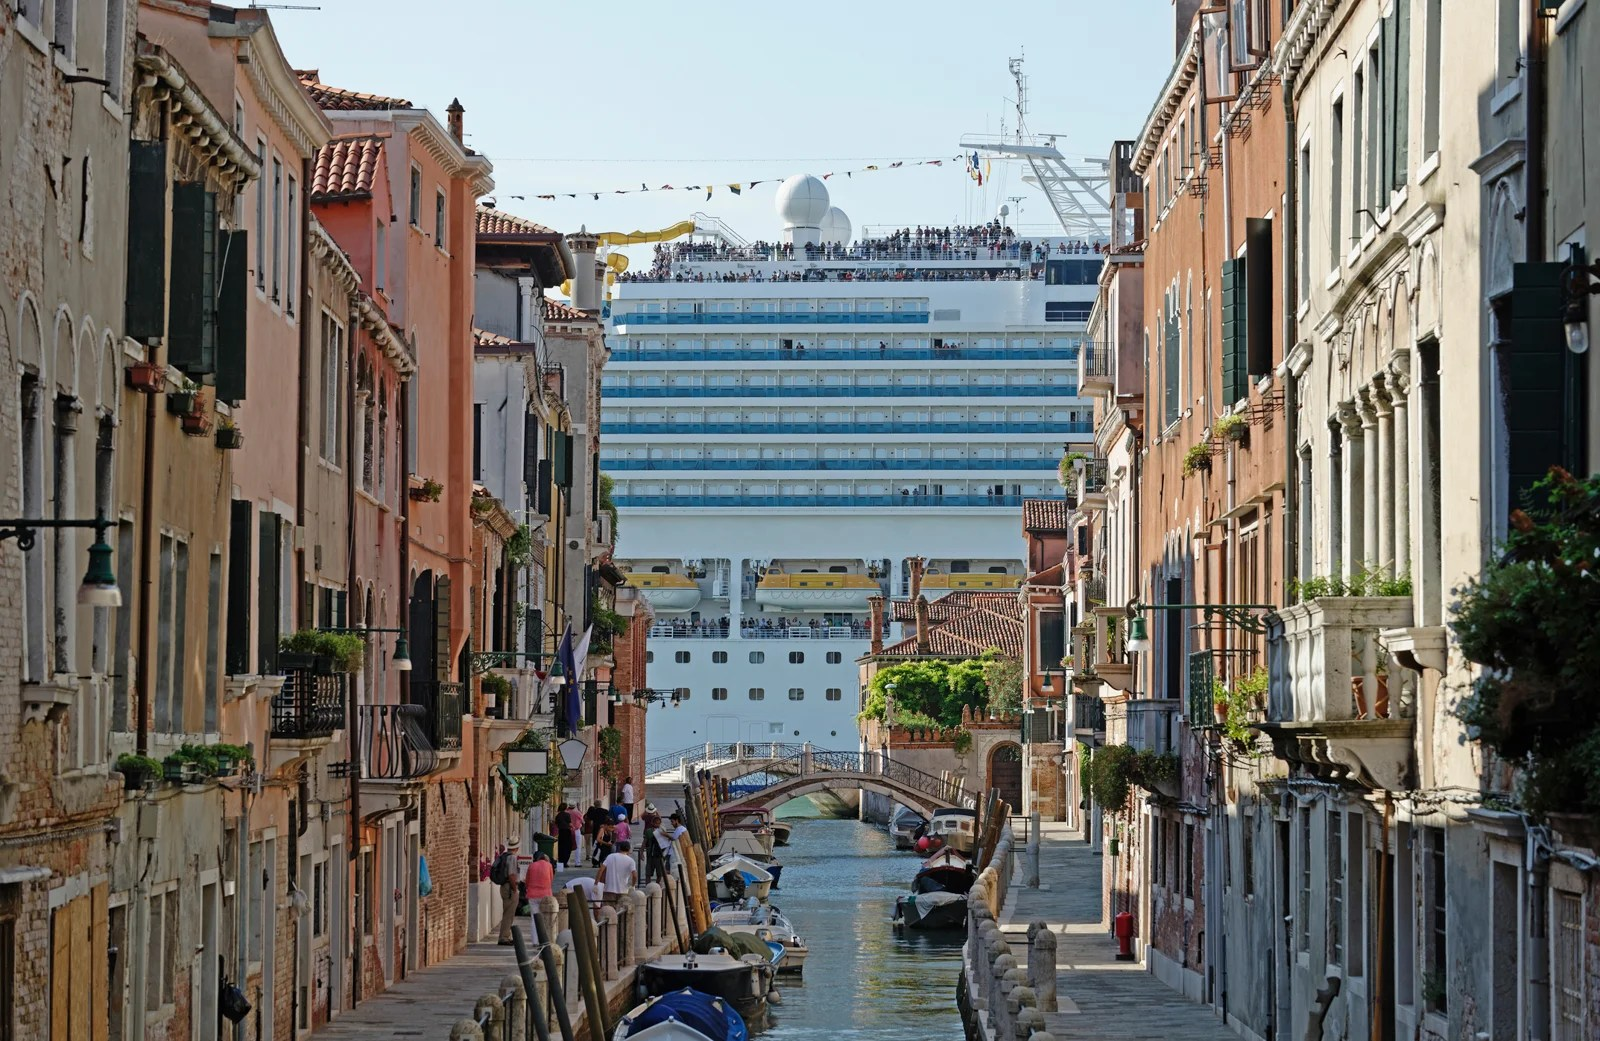 No, Cruise Ships Have Not Been Banned from Venice